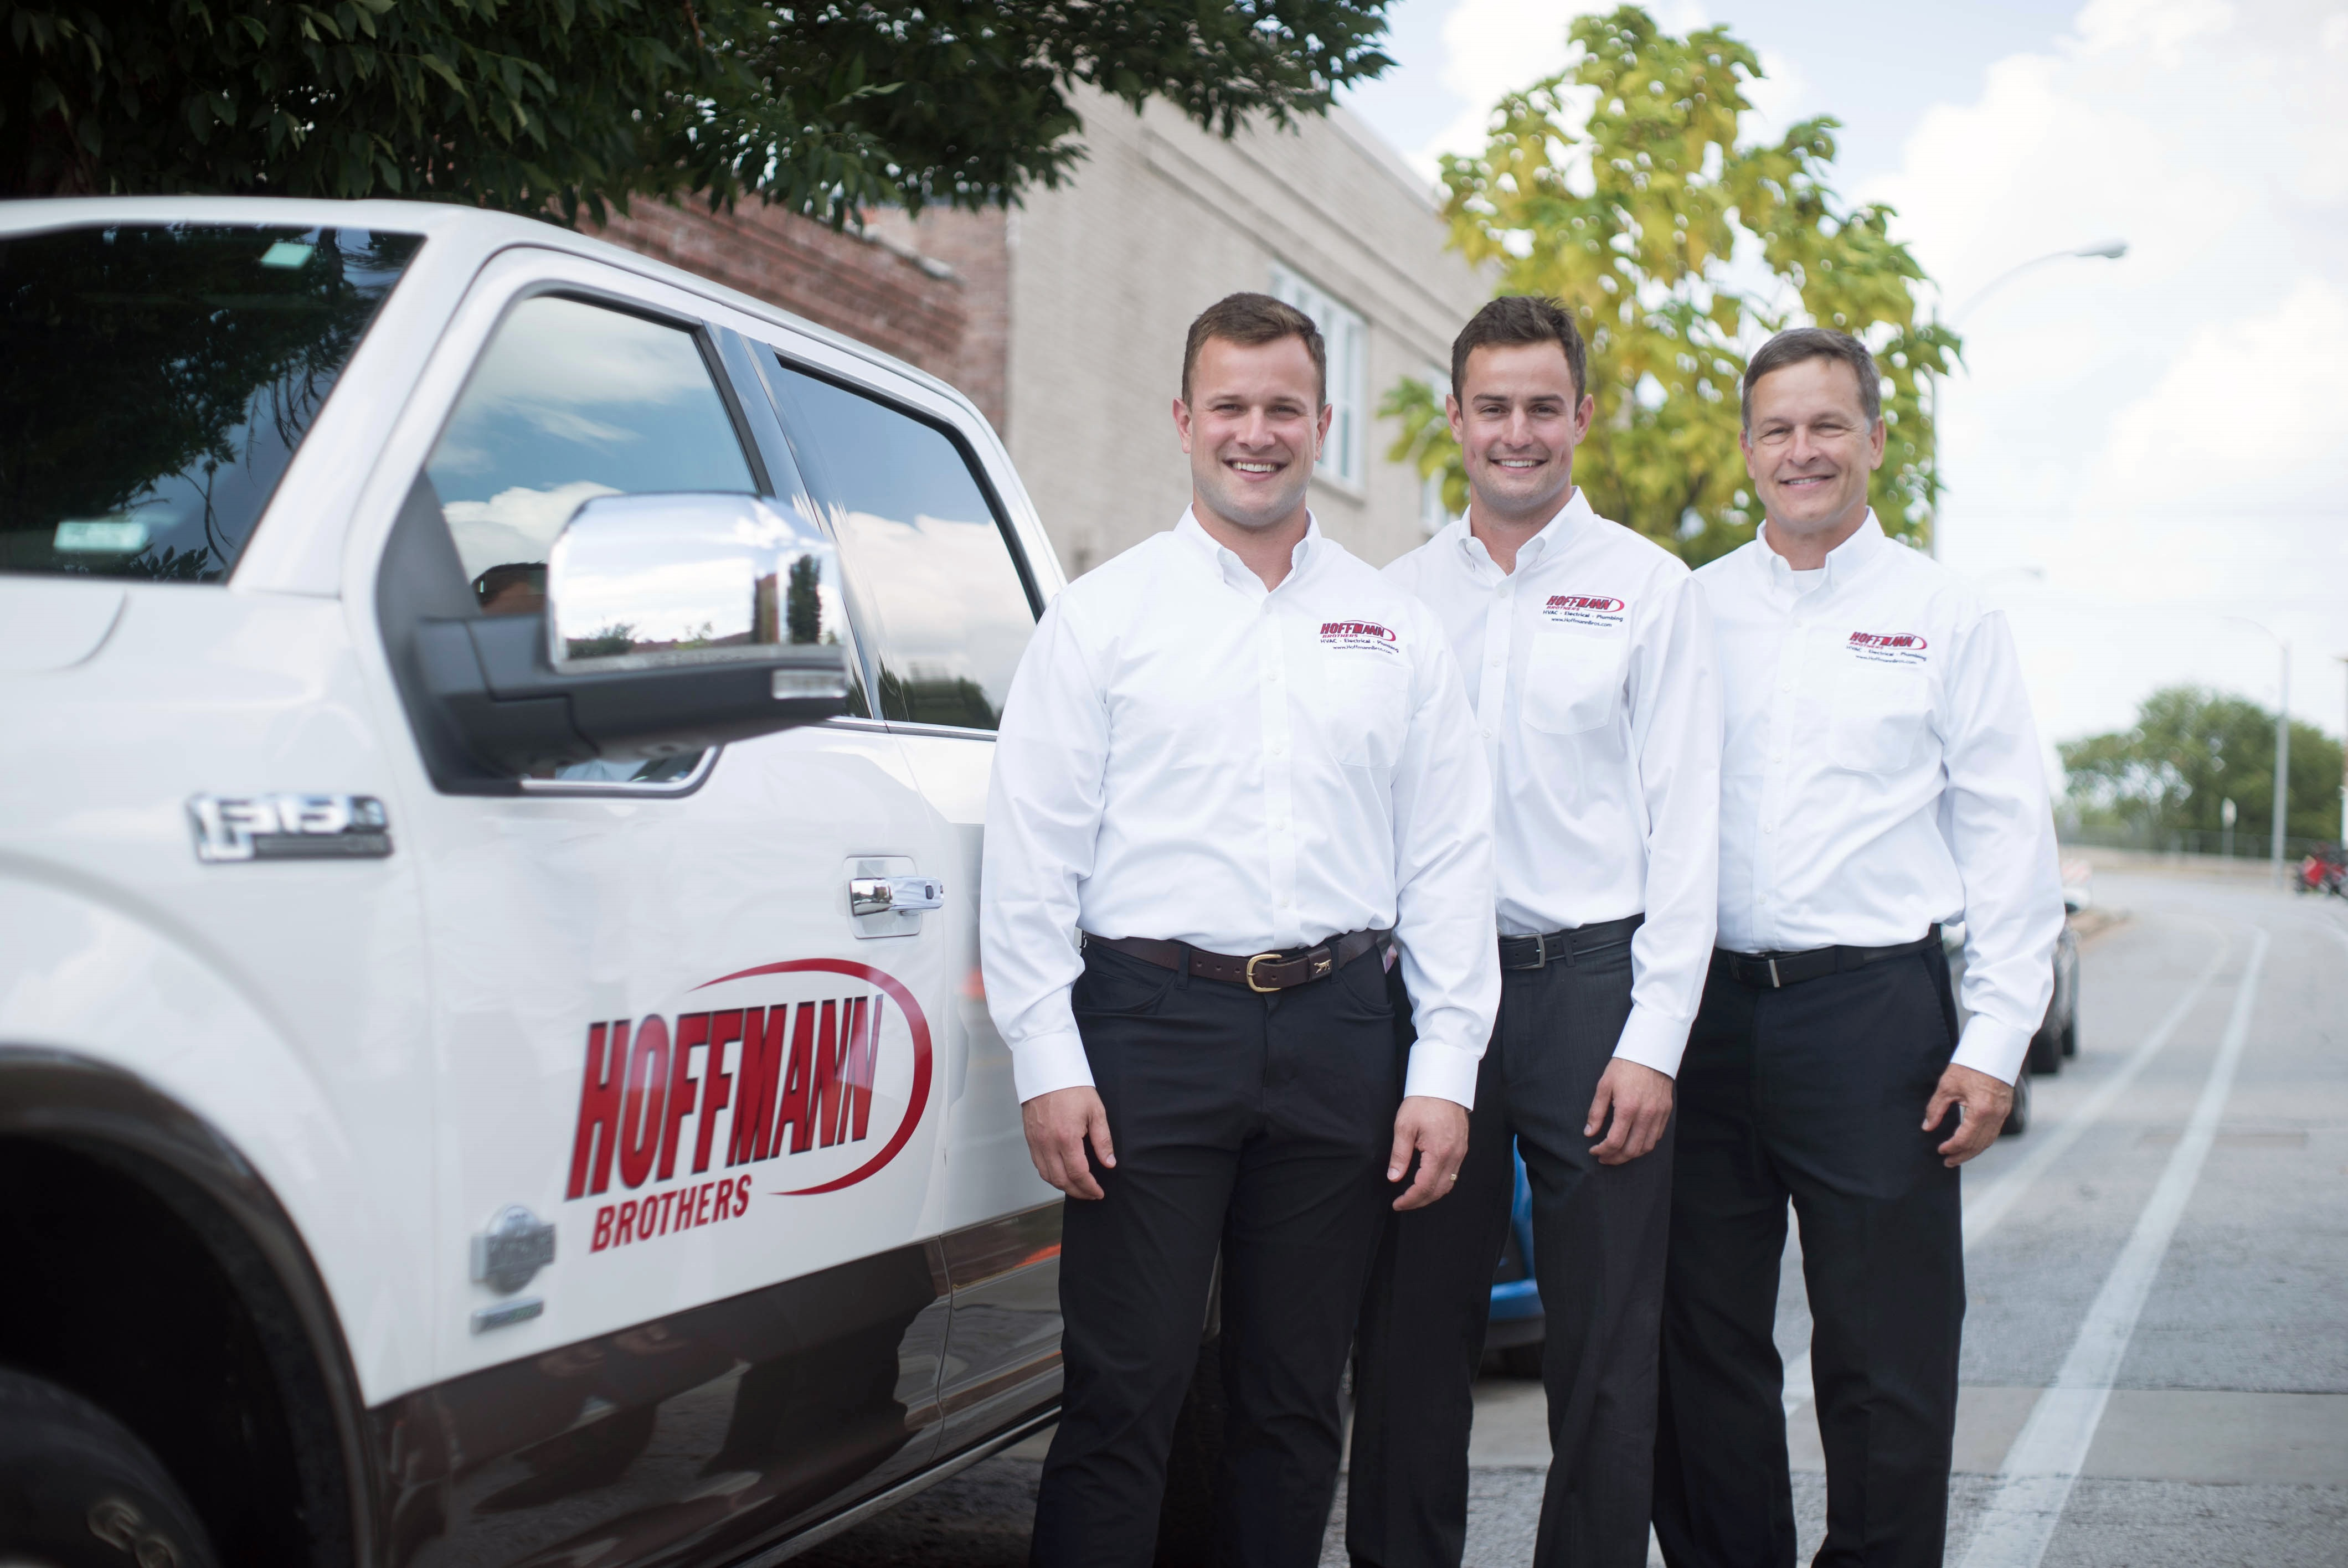 Hoffmann Brothers owners